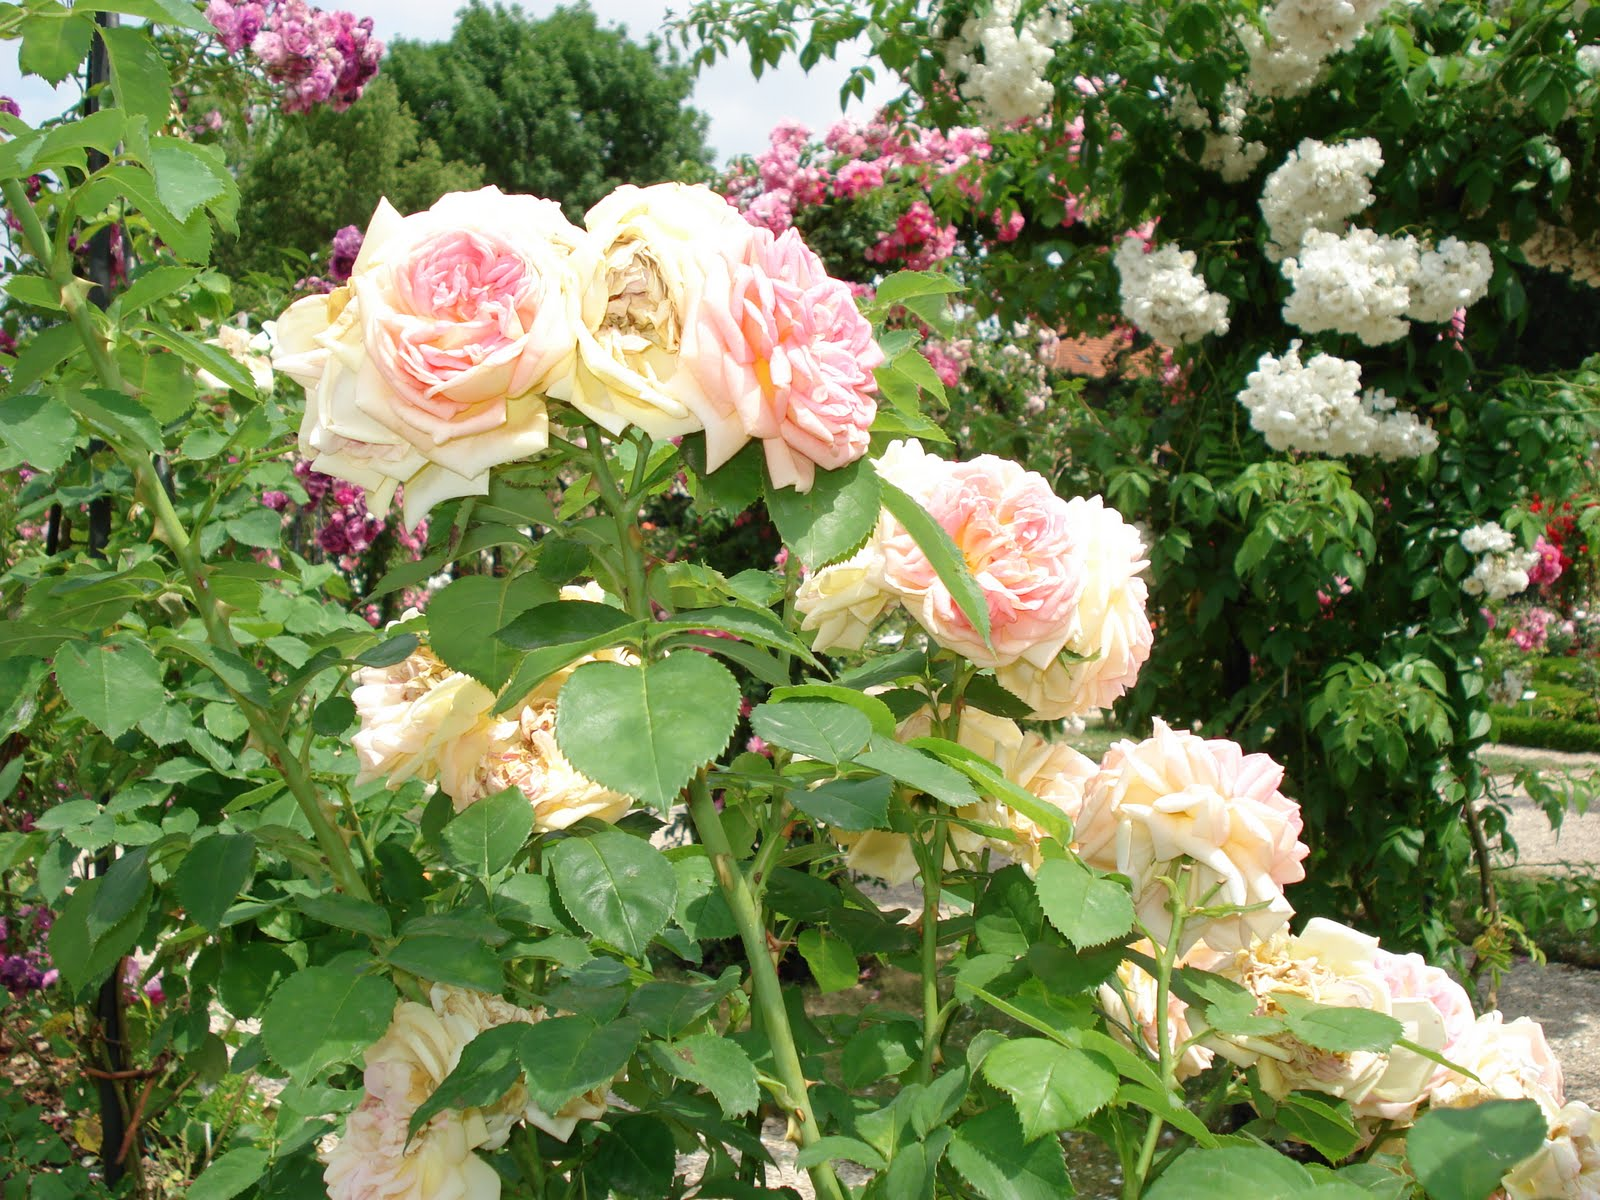 Most beautiful rose gardens in the world - Undoubtedly The Most Beautiful Rose Garden In The World L Hay Les Roses Was Created In 1899 By Jules Gravereaux And Restored In 1939 Just Outside Of Paris